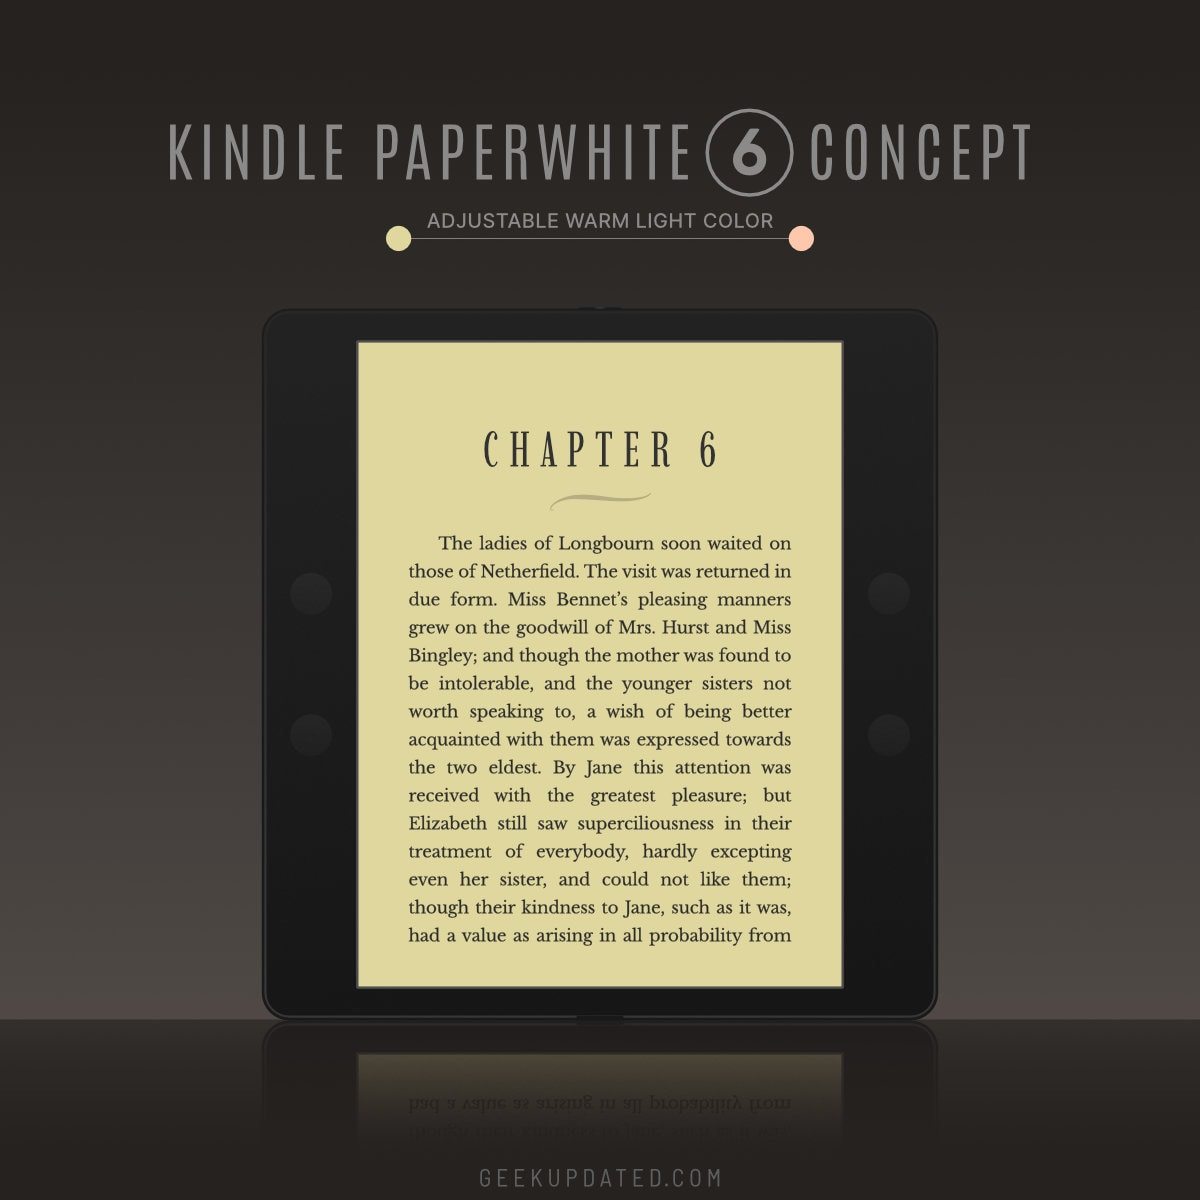 Kindle Paperwhite 6 concept - yellow warm light